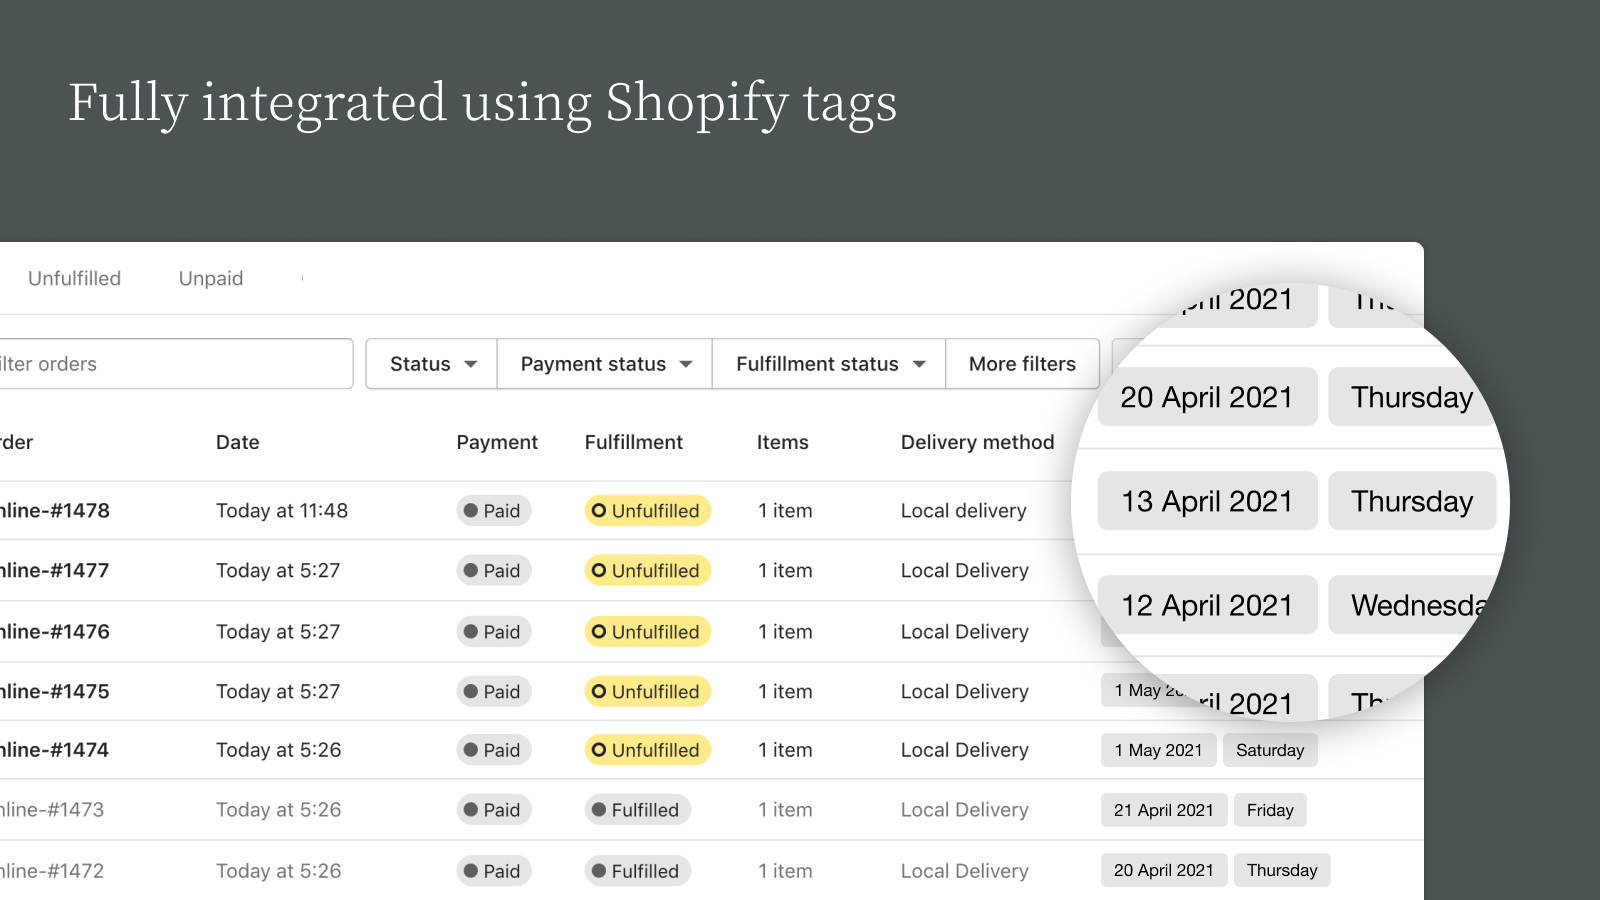 Fully integrated using Shopify tags